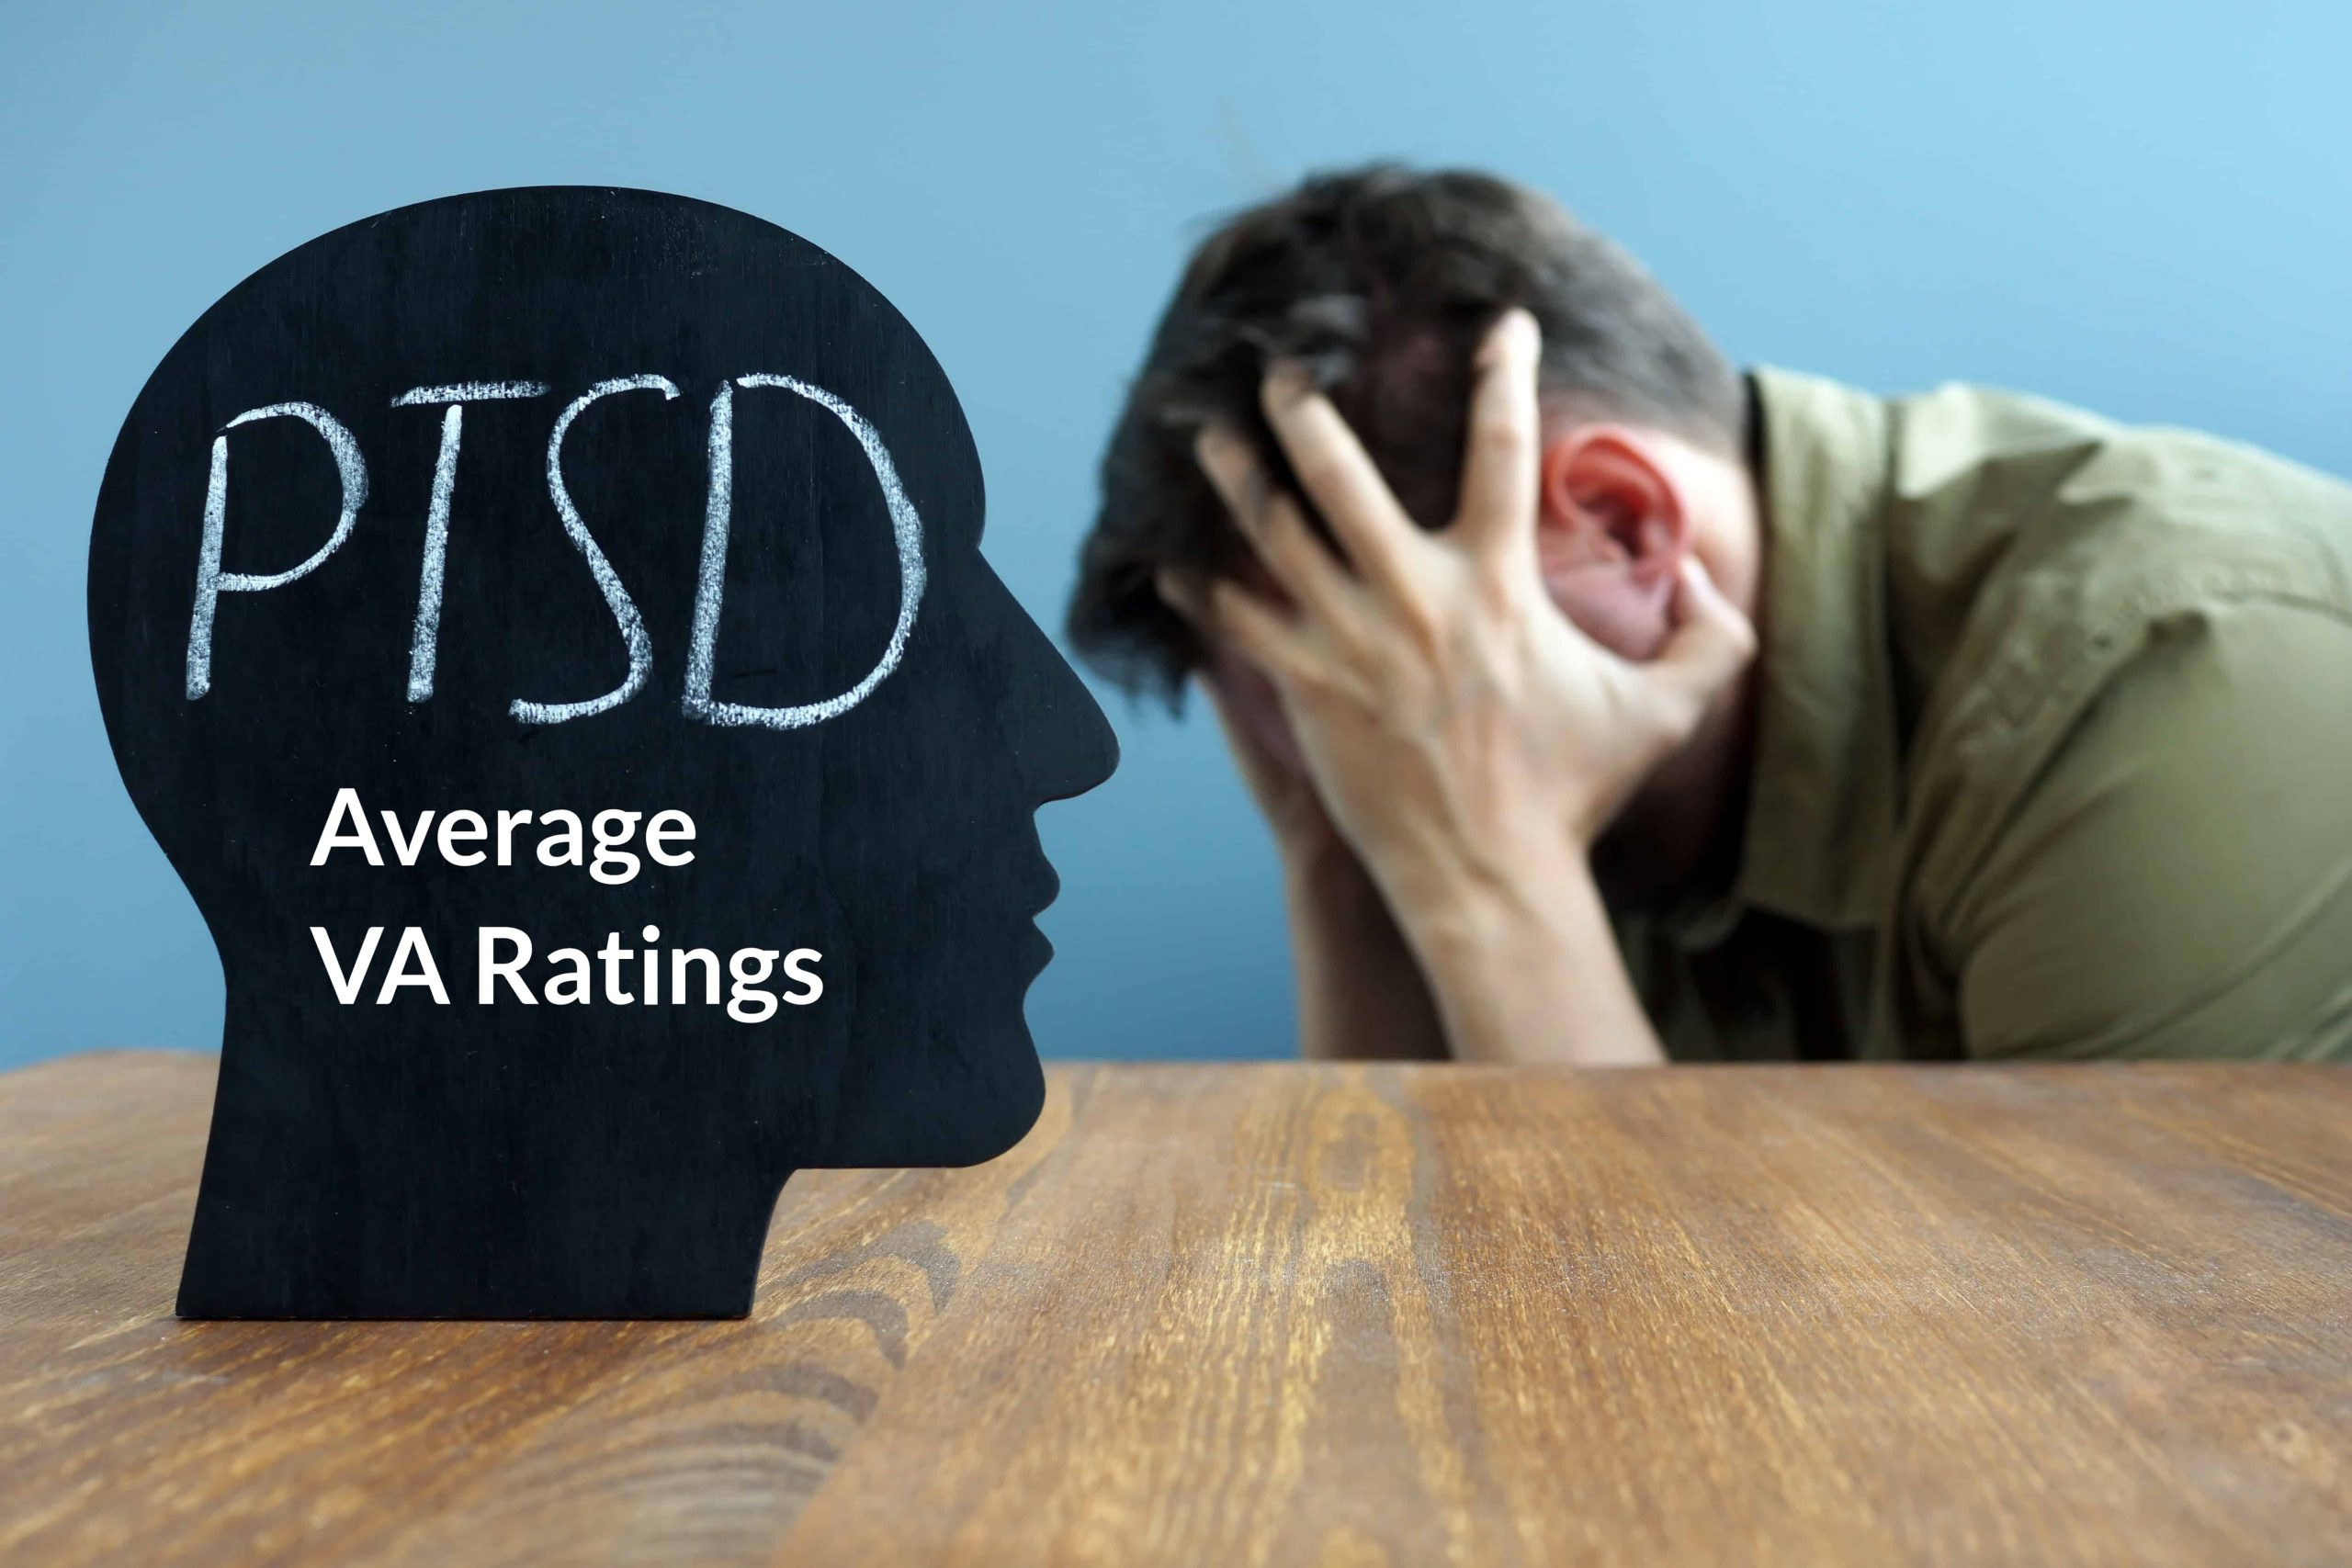 ptsd rating scale